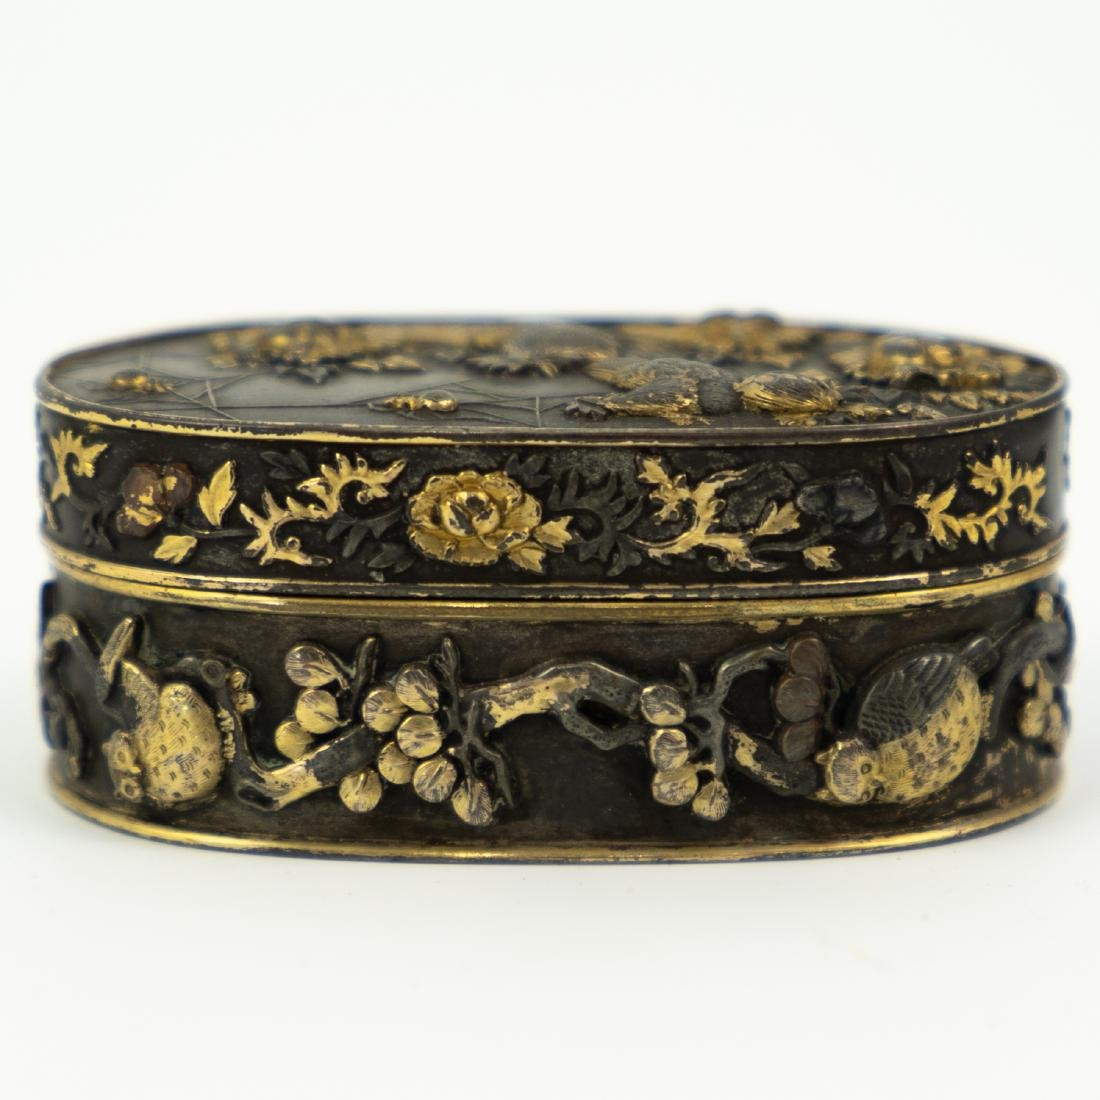 Japanese Meiji Period Bronze and Gold Box - 3